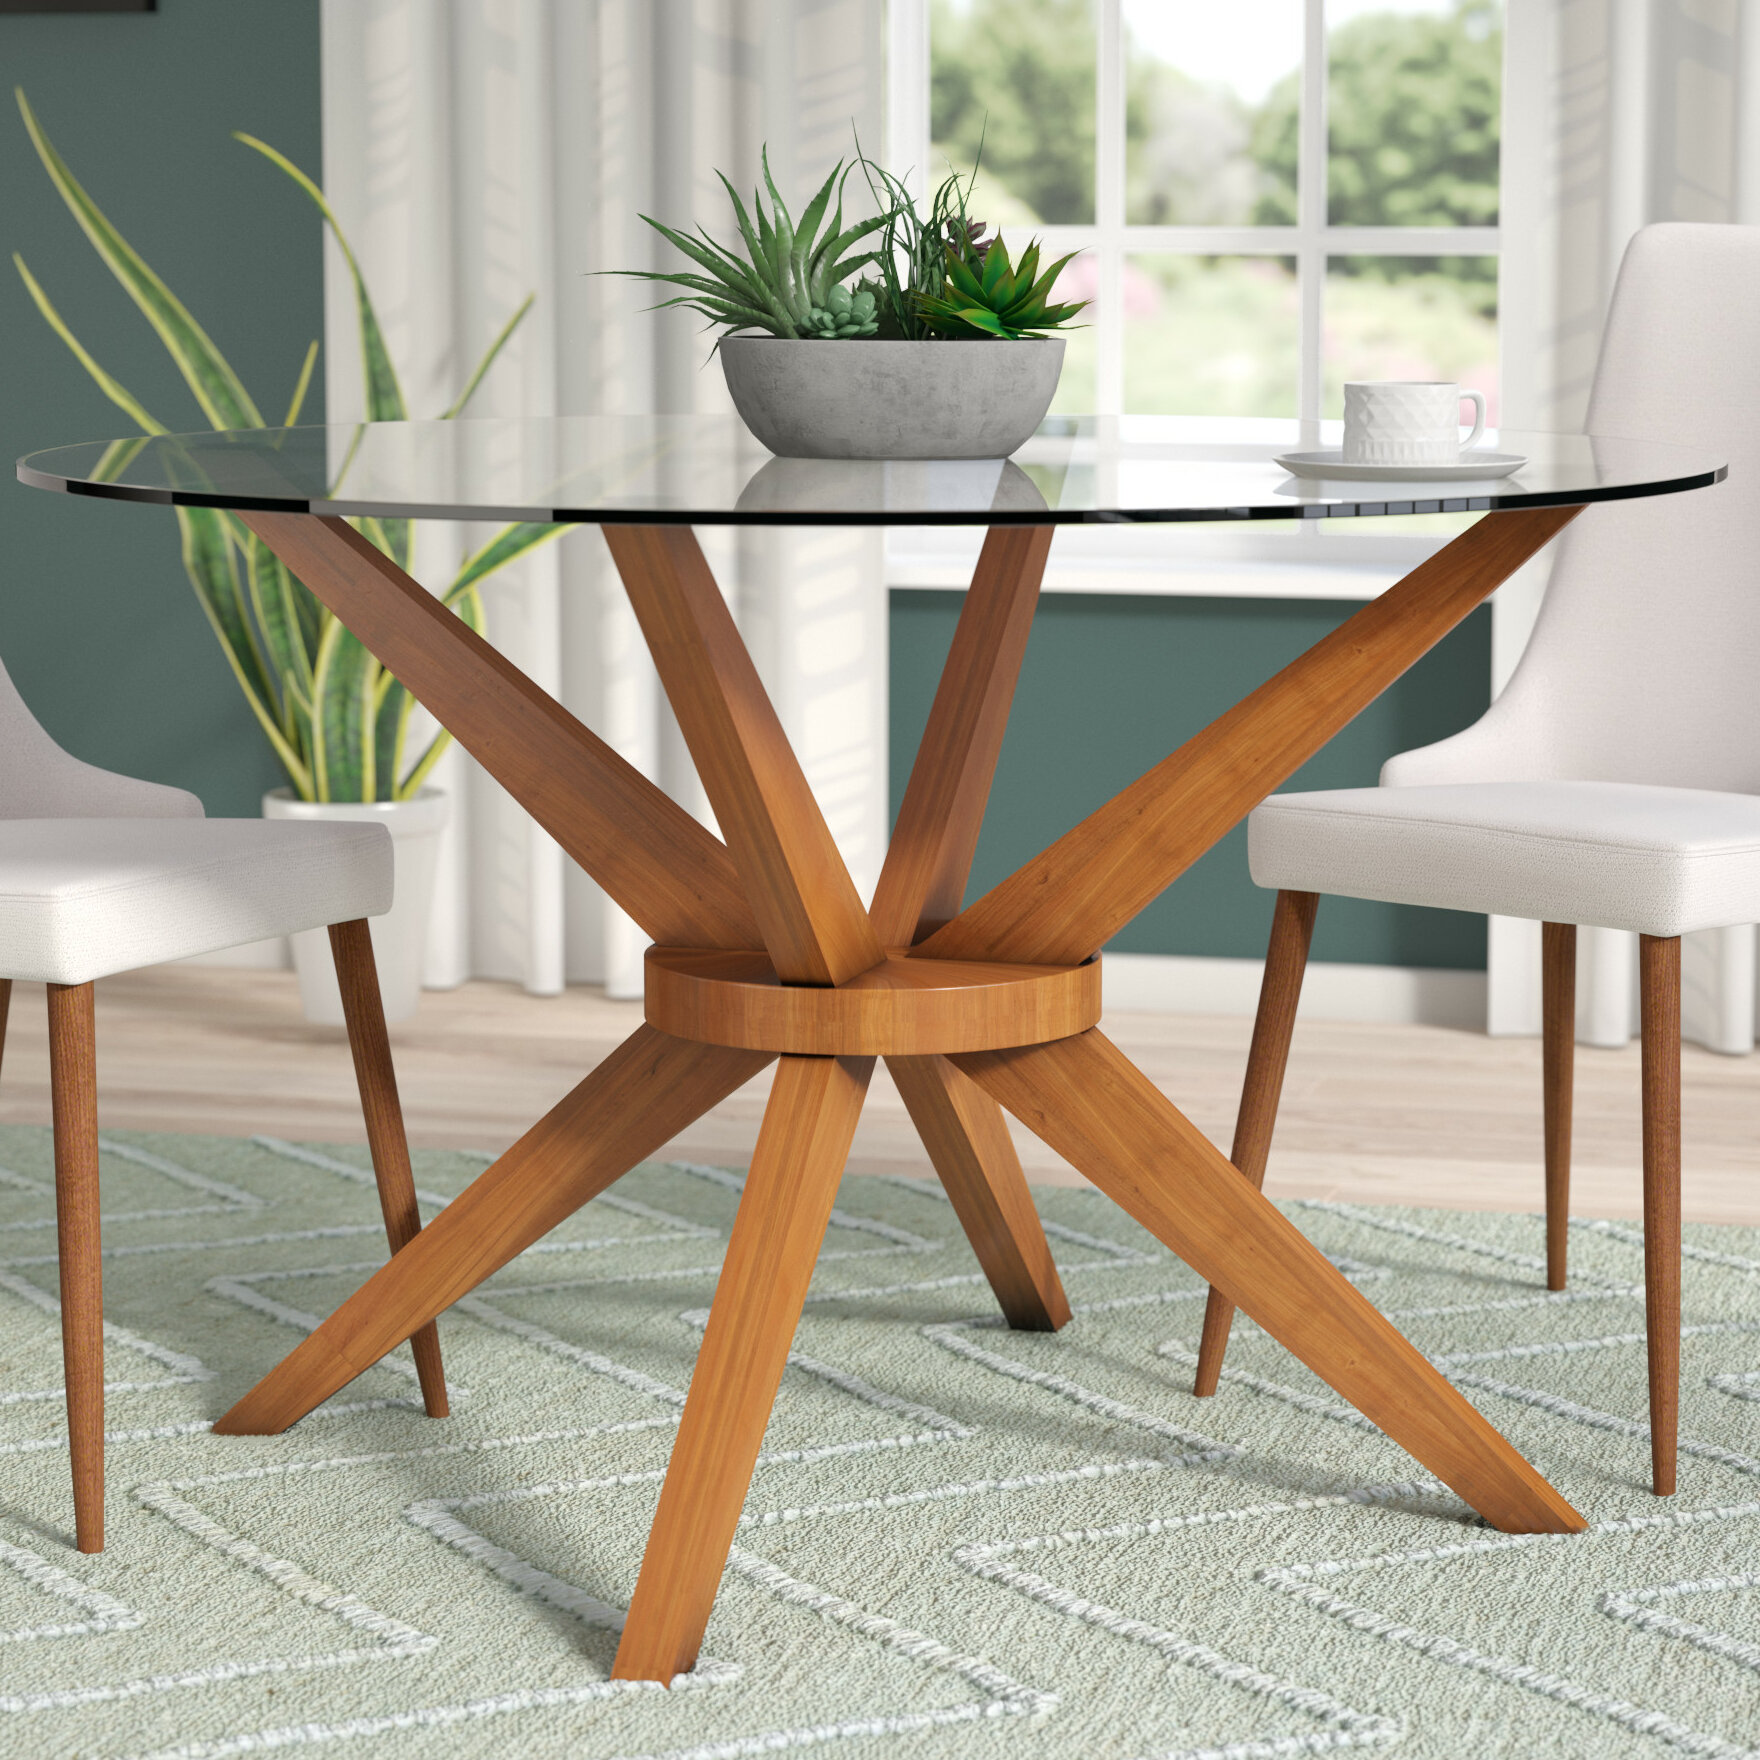 Big Sale Our Best Dining Table Deals You Ll Love In 2021 Wayfair